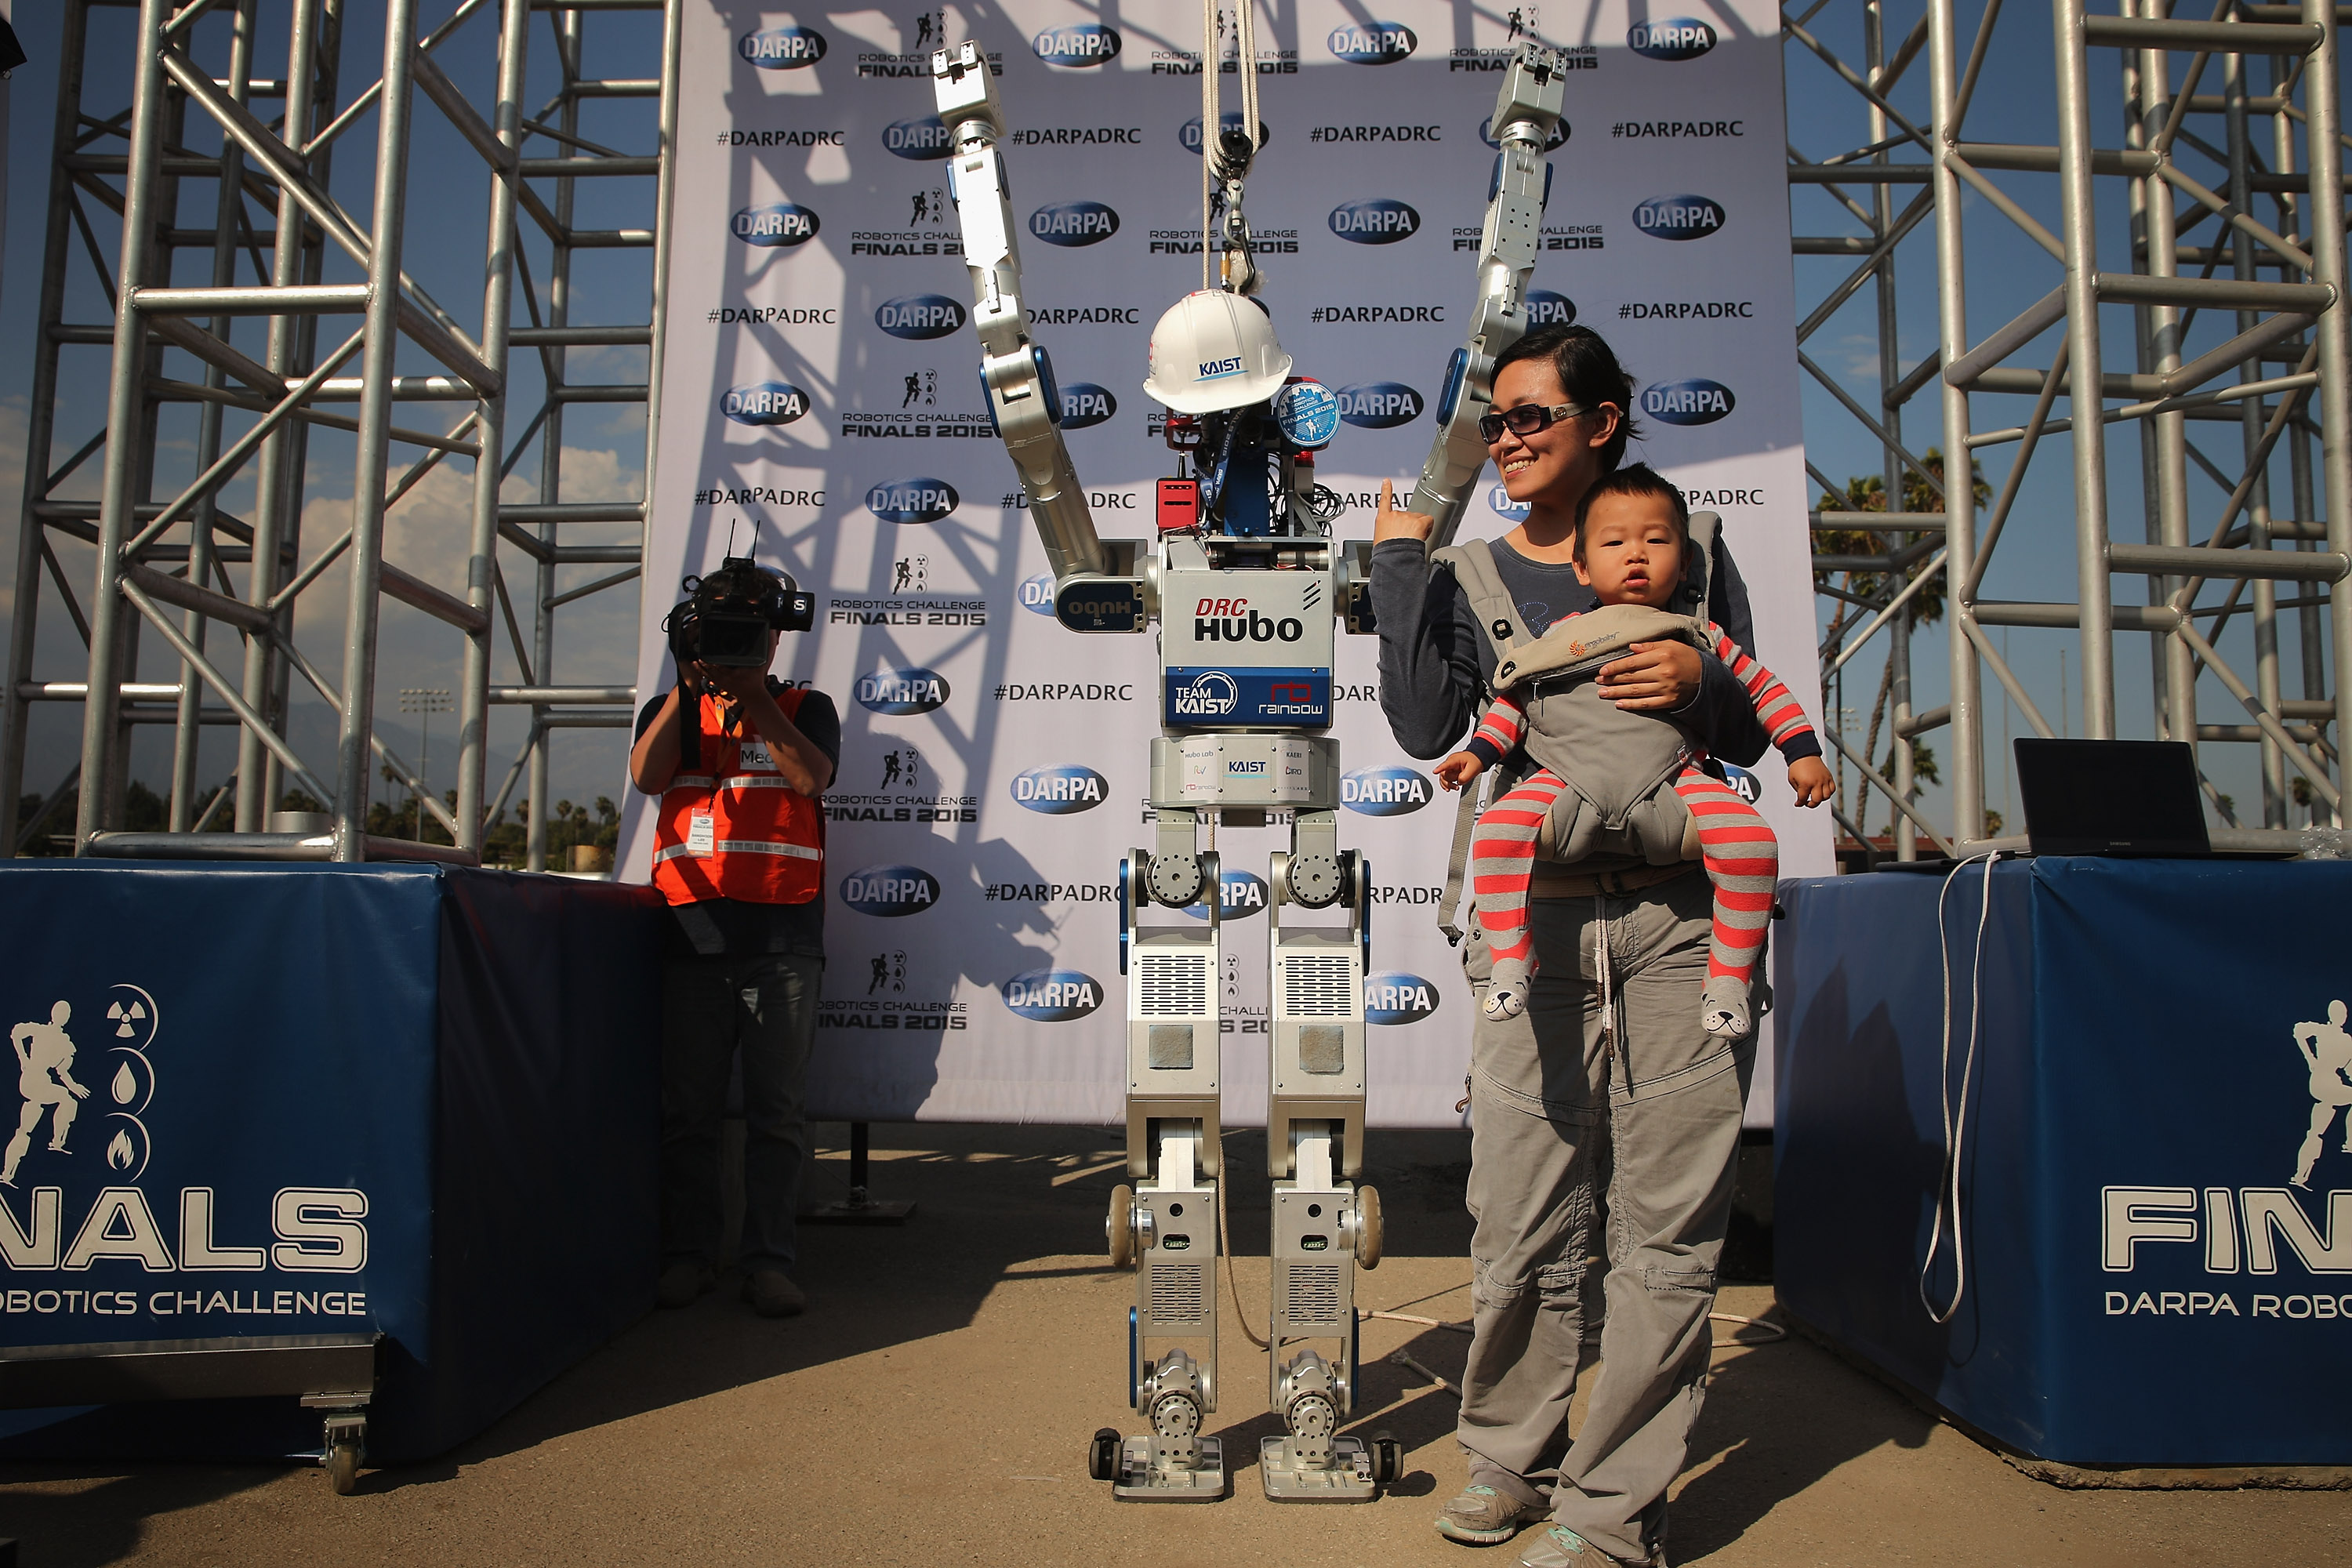 Fans pose for photographs with Team Kaist's DRC-HUBO robot after its successful run during the Defense Advanced Research Projects Agency (DARPA) Robotics Challenge at the Fairplex June 6, 2015 in Pomona, California.